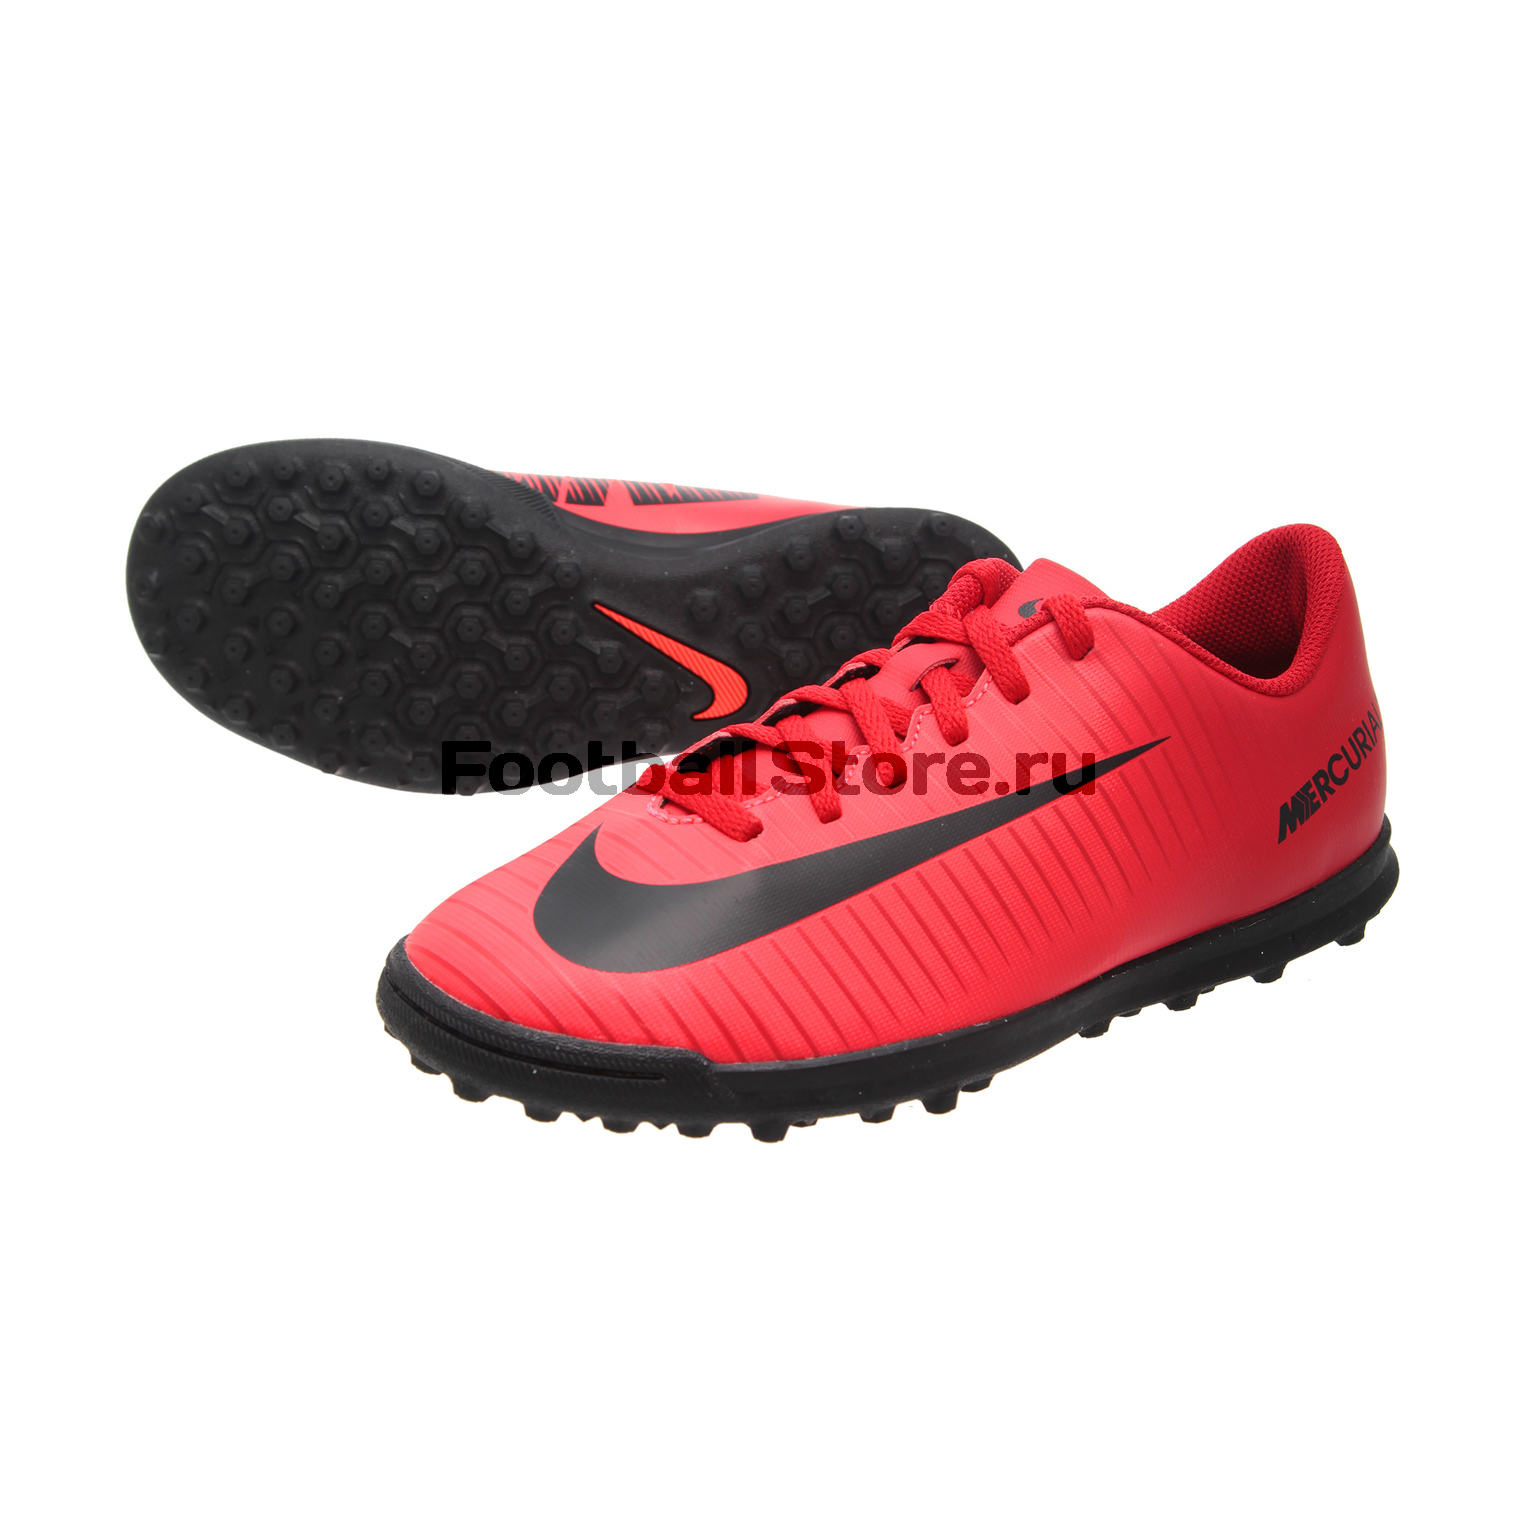 Шиповки Nike JR MercurialX Vortex III TF 831954-616 бутсы nike бутсы jr mercurialx vapor xi ic